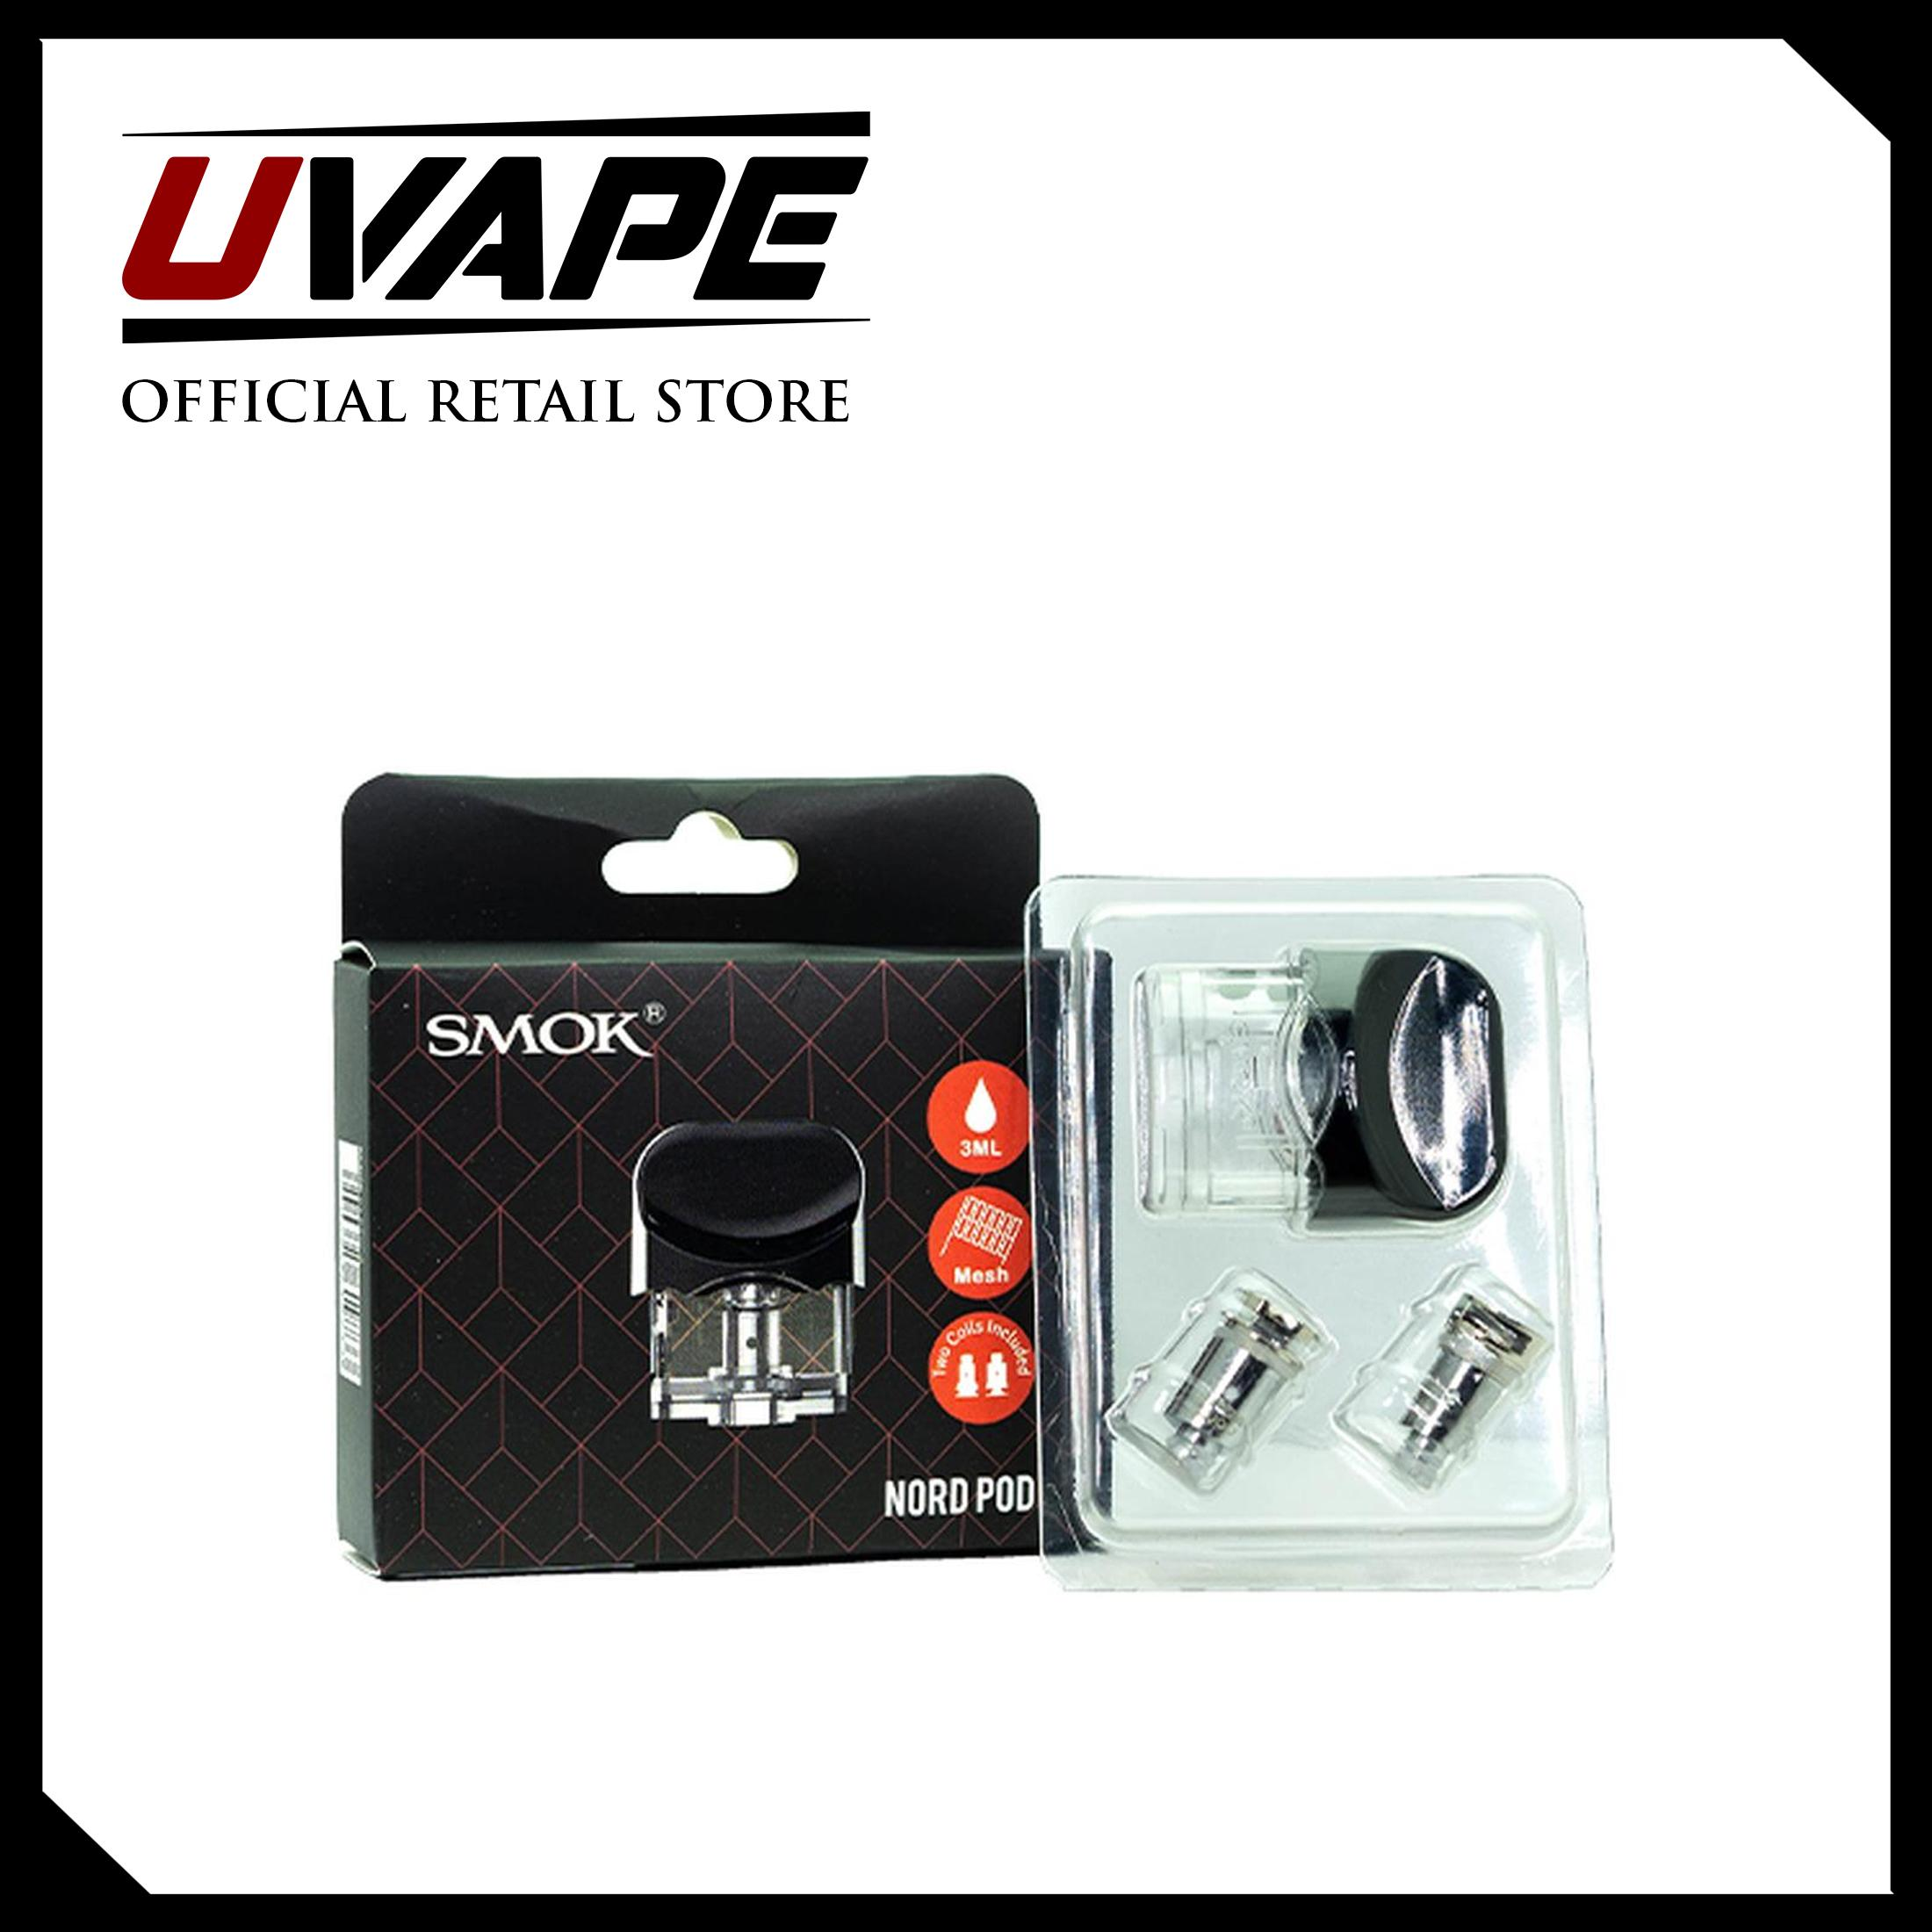 SMOK Nord Replacement Pod ( 1 pod+2 coil) (3ml) UVAPE